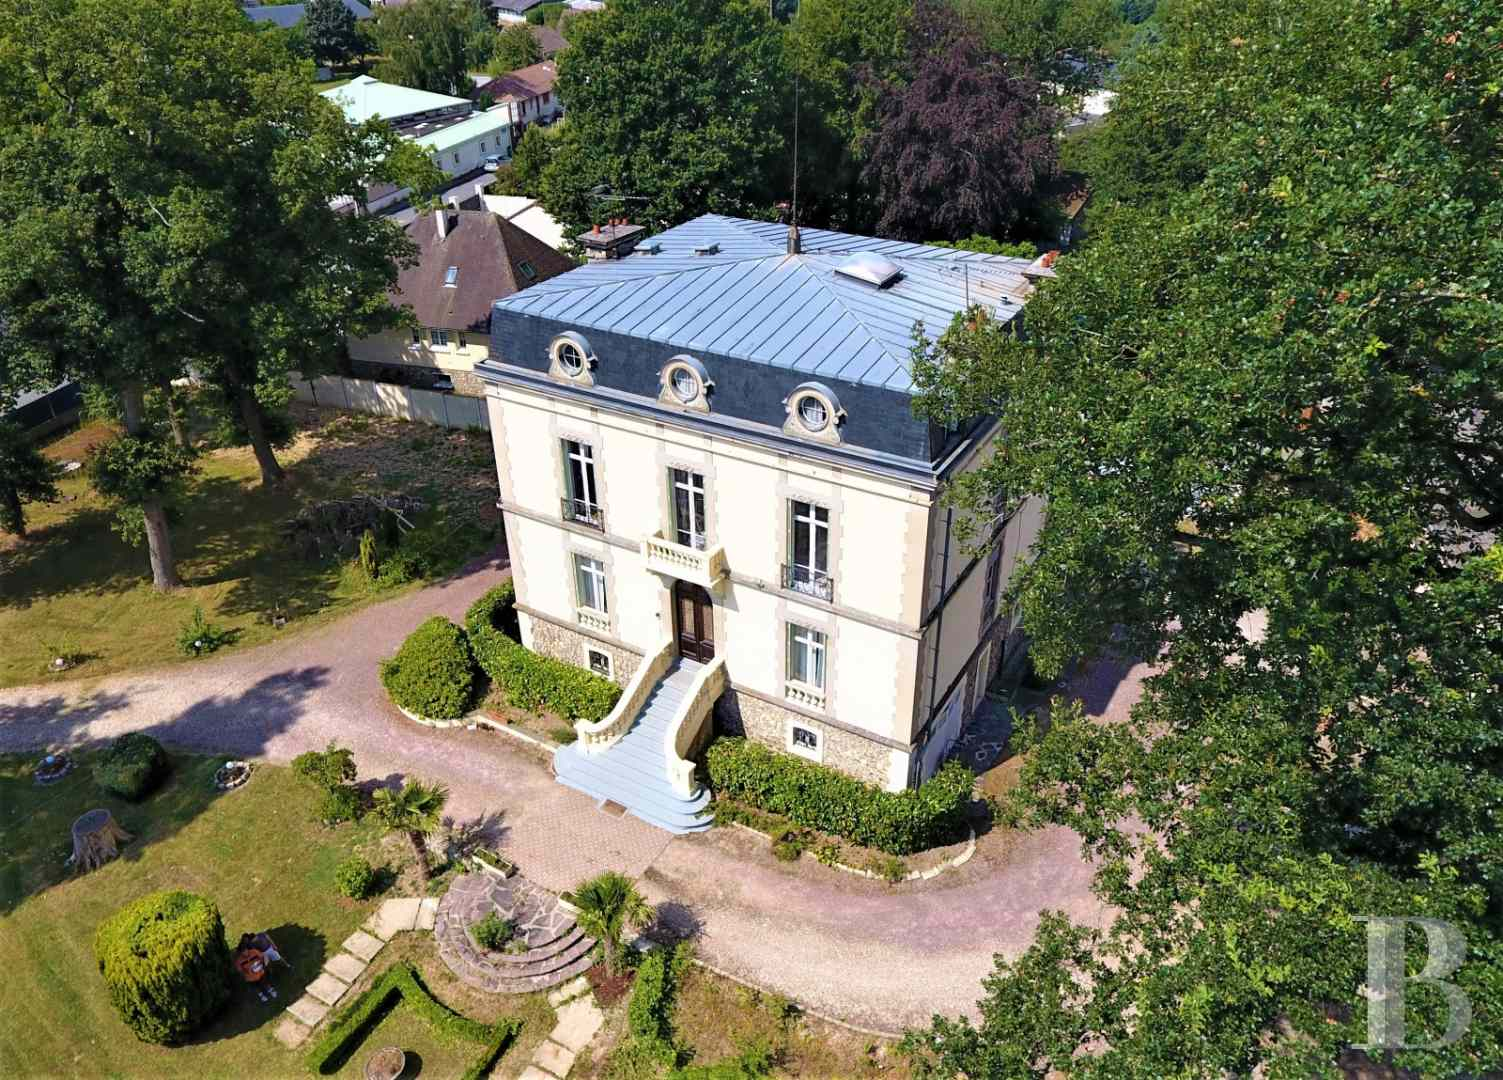 property for sale France upper normandy residences mansion - 1 zoom